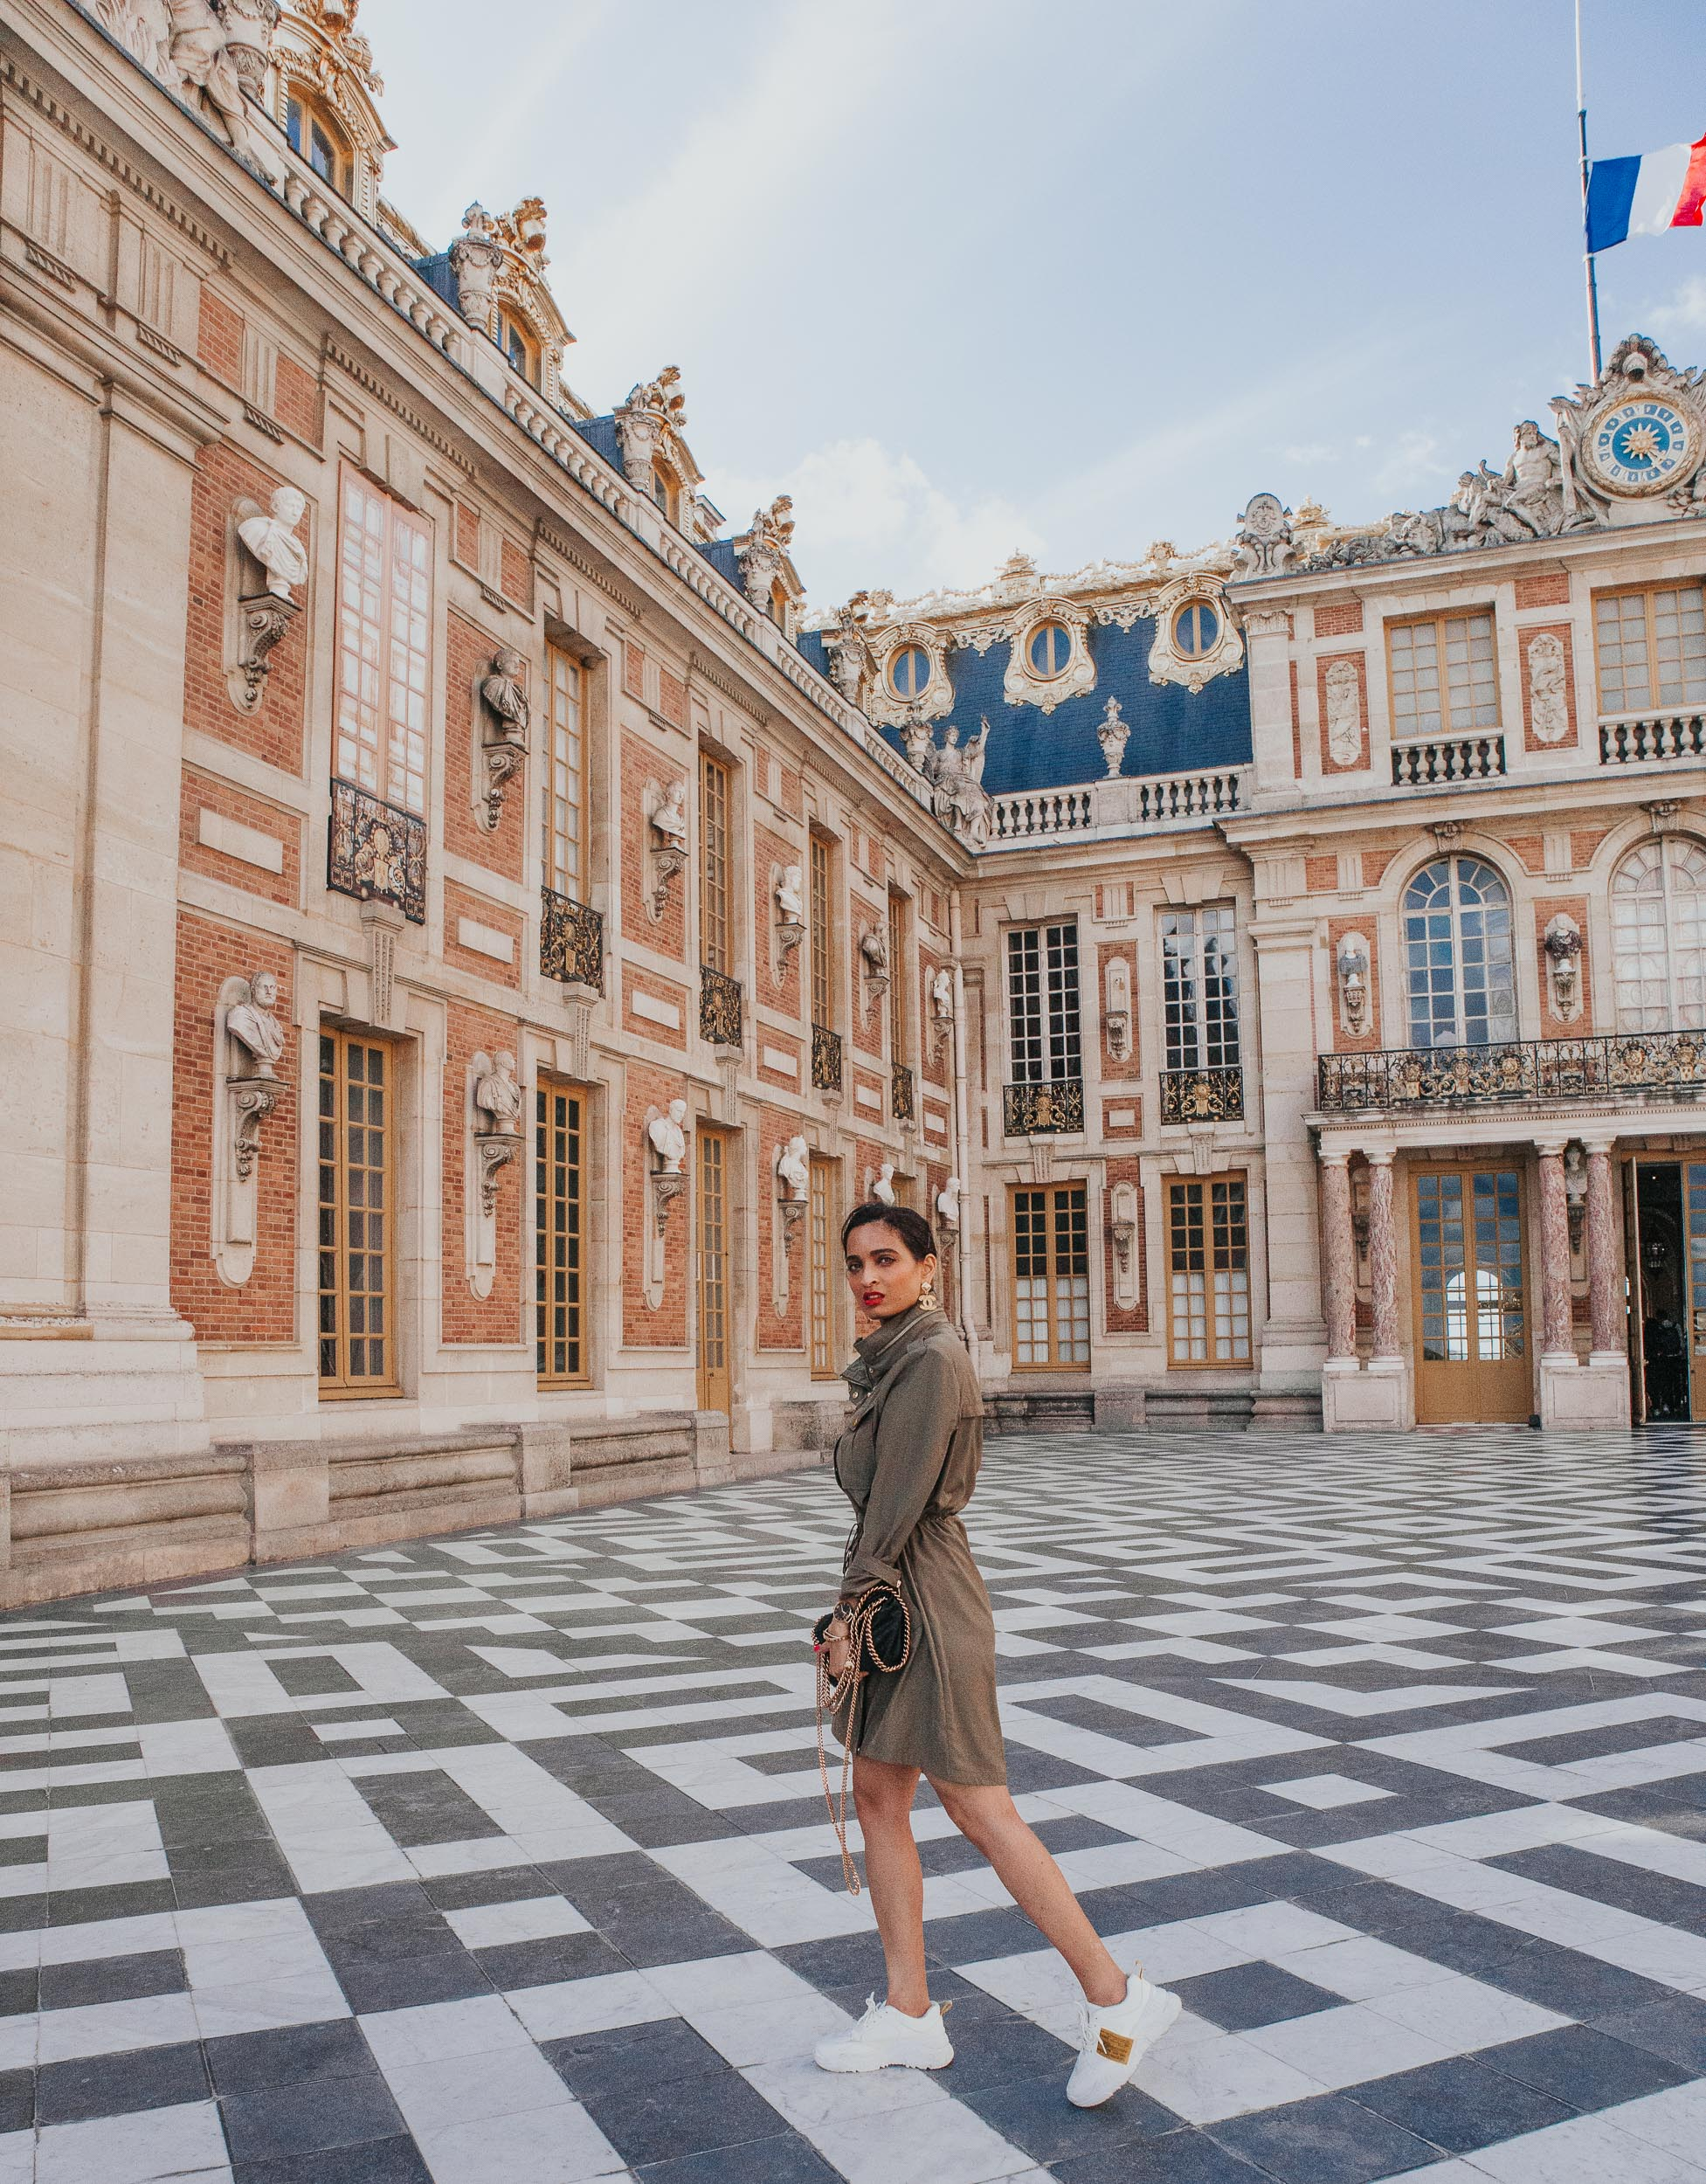 Girl travel blogger and fashion blogger wearing olive green trench dress by Badgeley Mischka with gold accessories standing at the Palace of Versailles in France for Paris travel guide